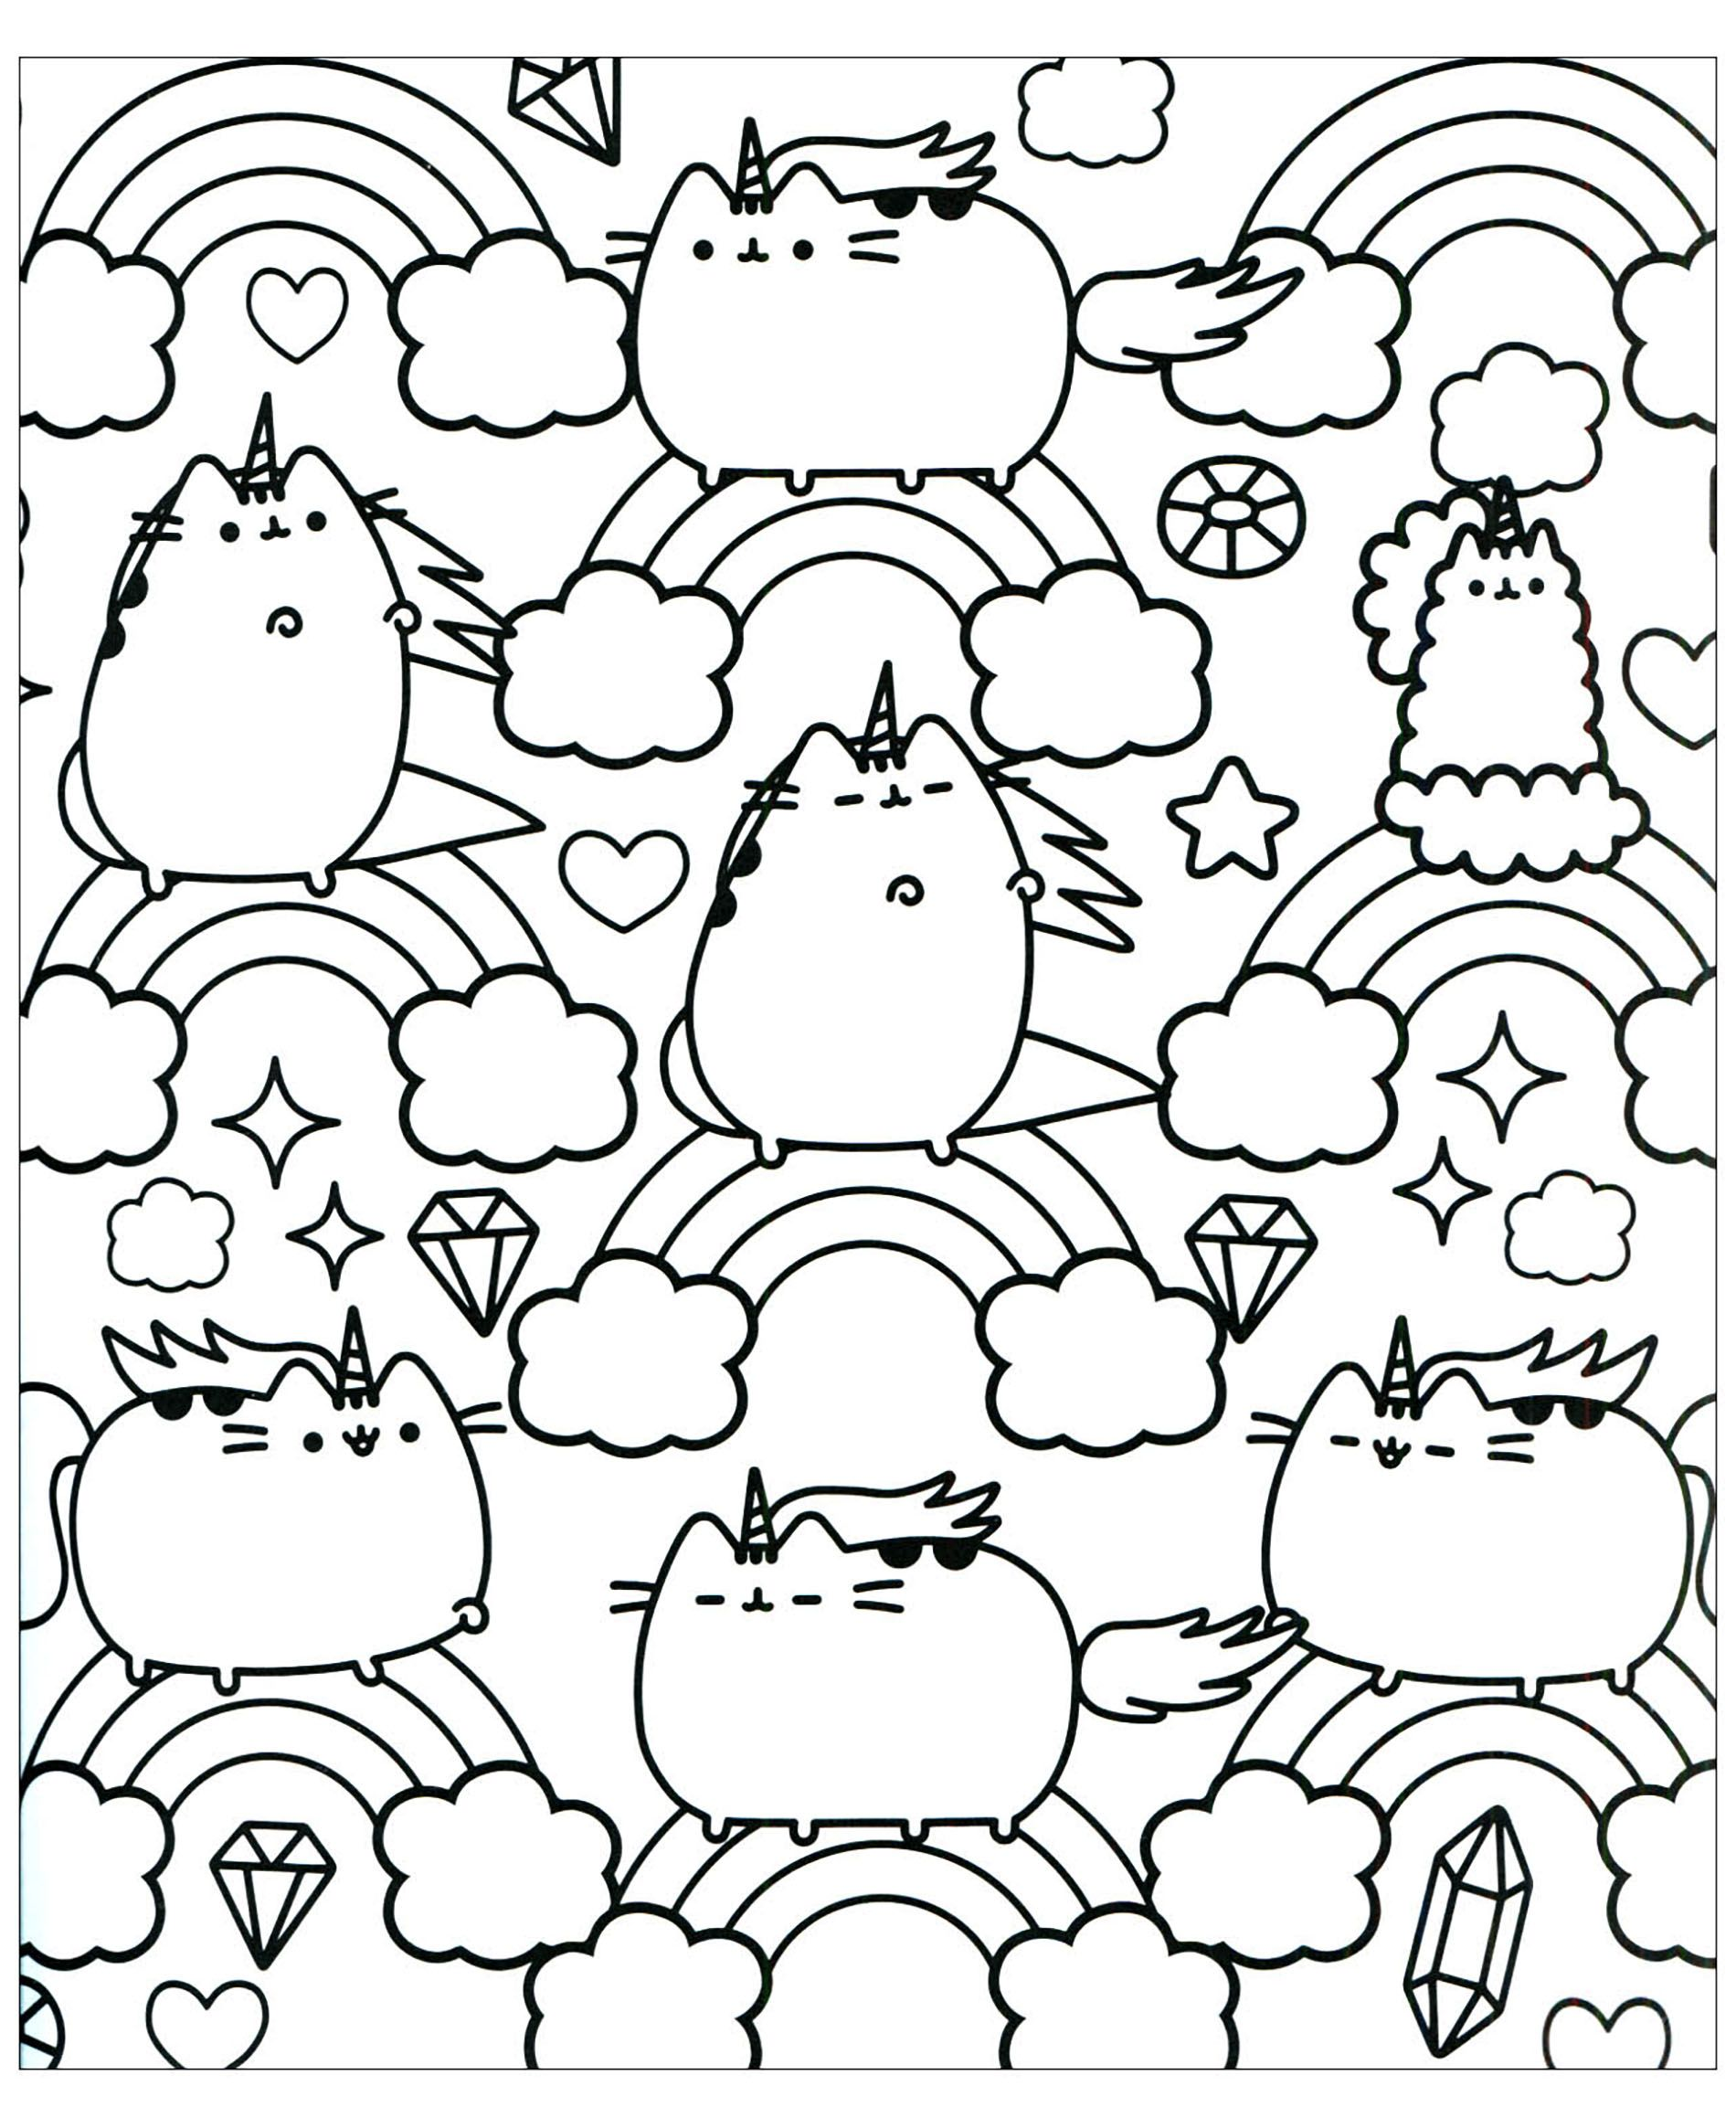 Pusheen To Color For Kids Pusheen Coloring Pages For Kids Just